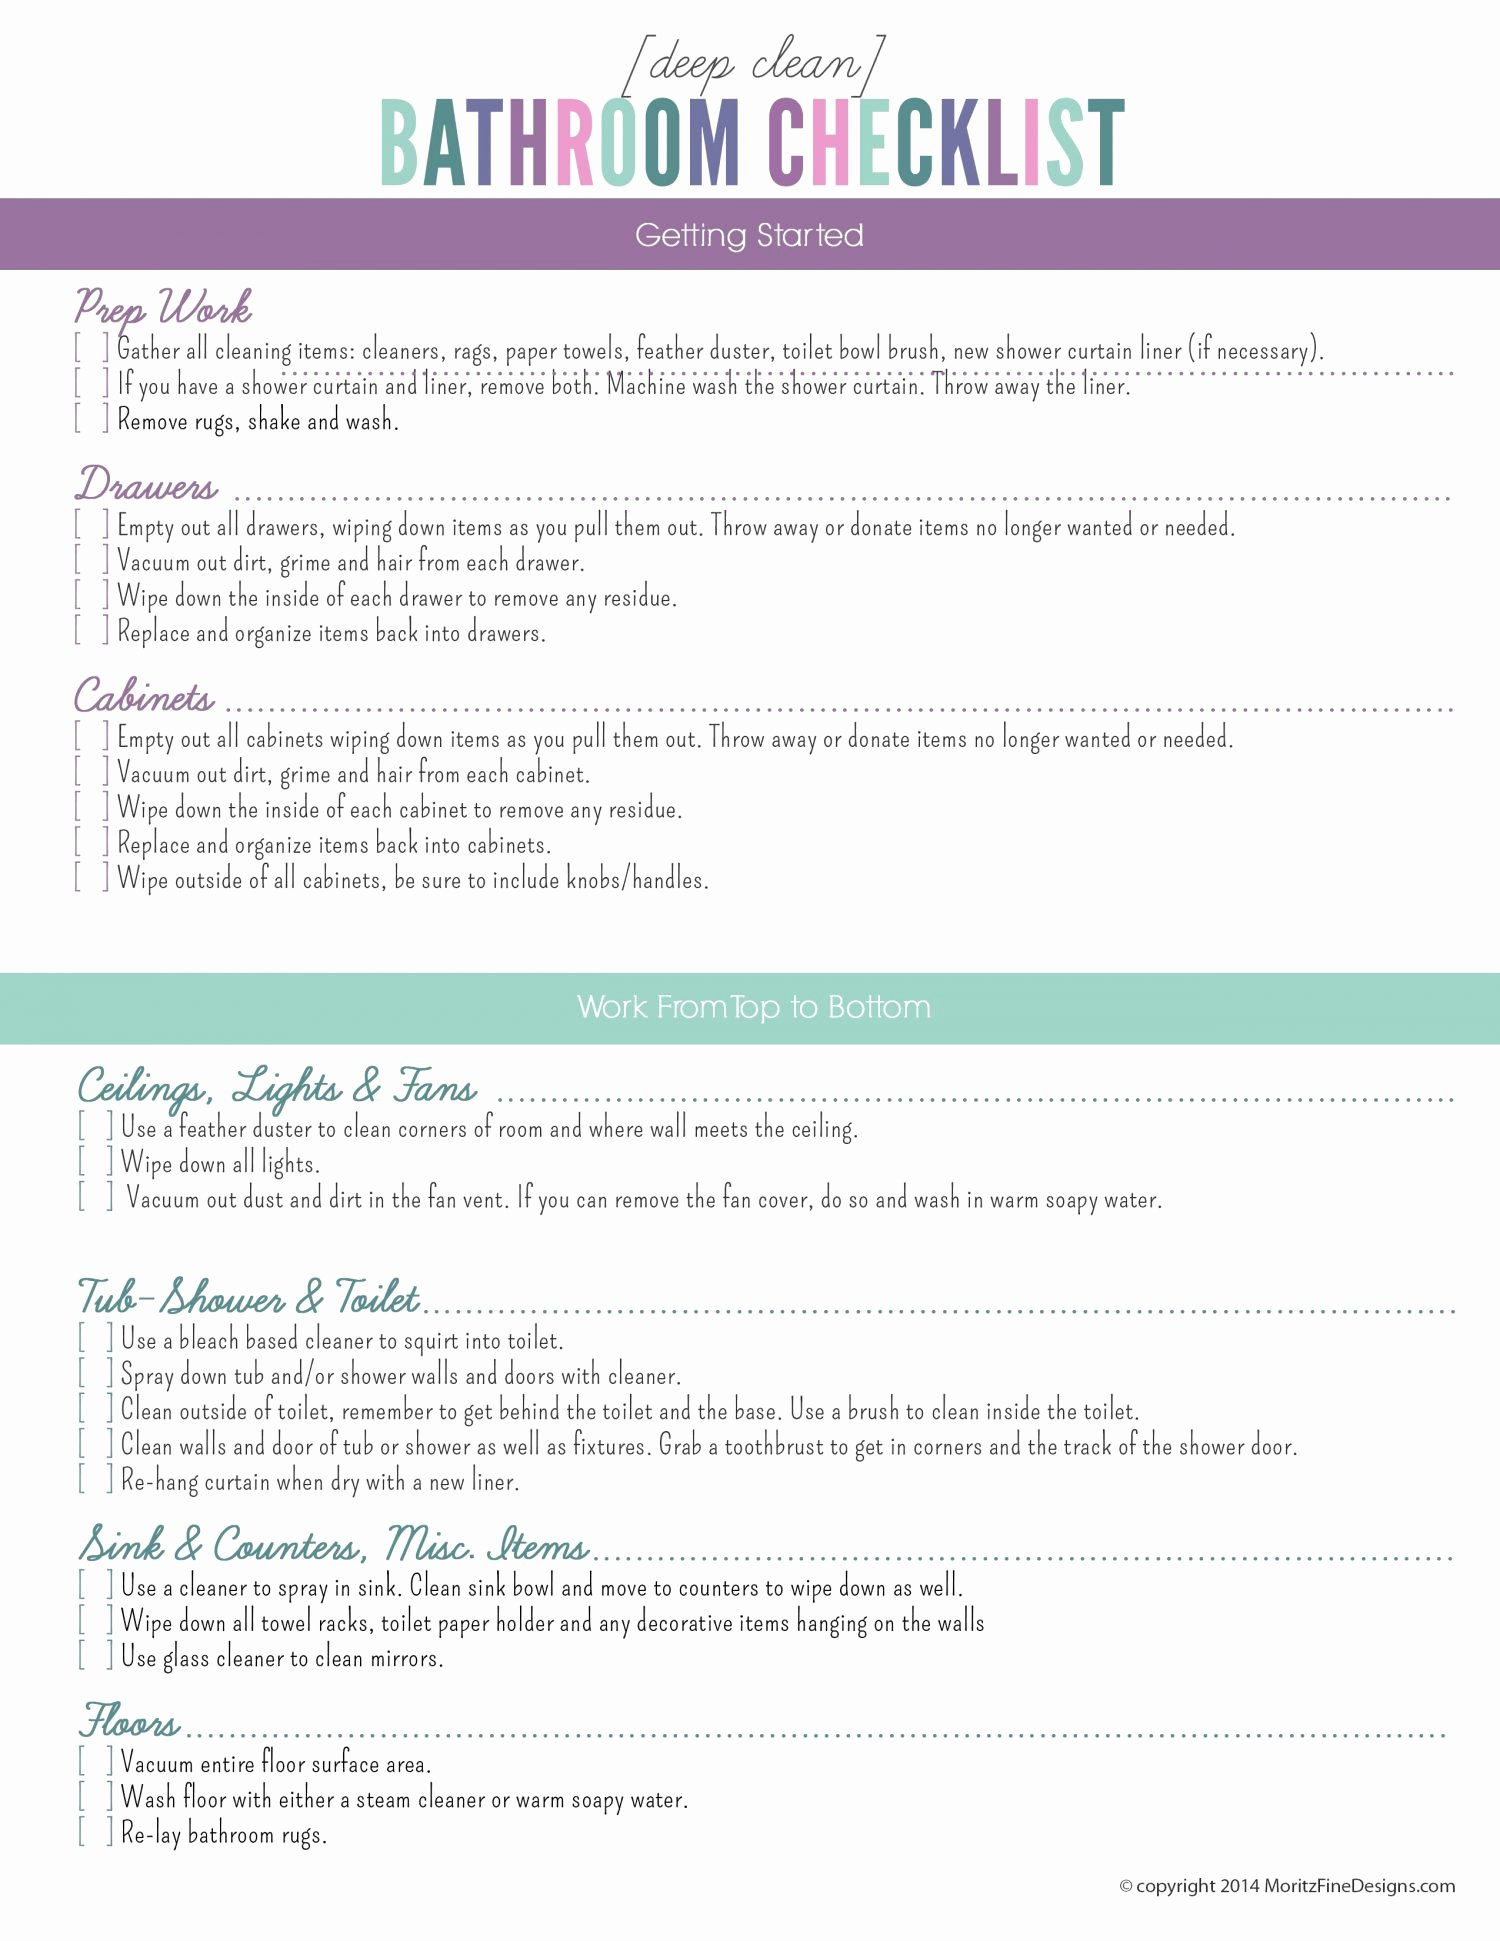 Deep Cleaning Checklist Template Inspirational Deep Clean the Bathroom Checklist